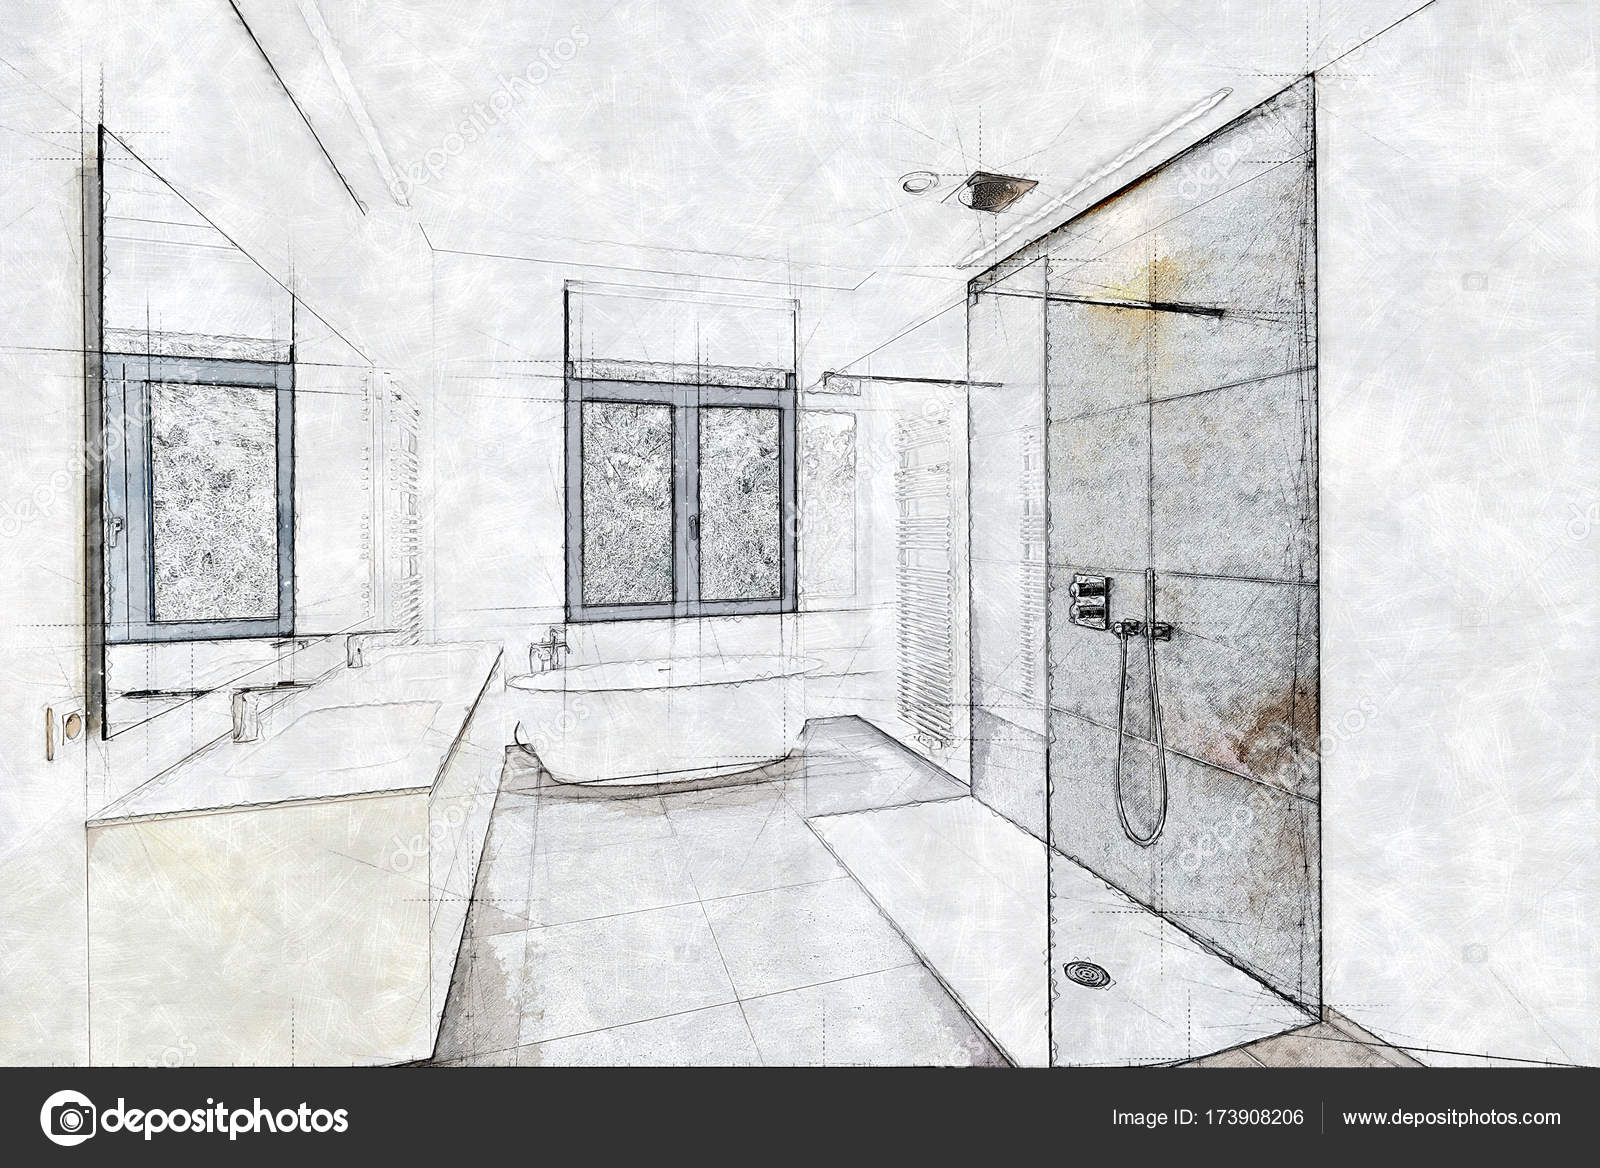 Shower Under Stairs Sketch Of A Tiled Bathroom And Shower